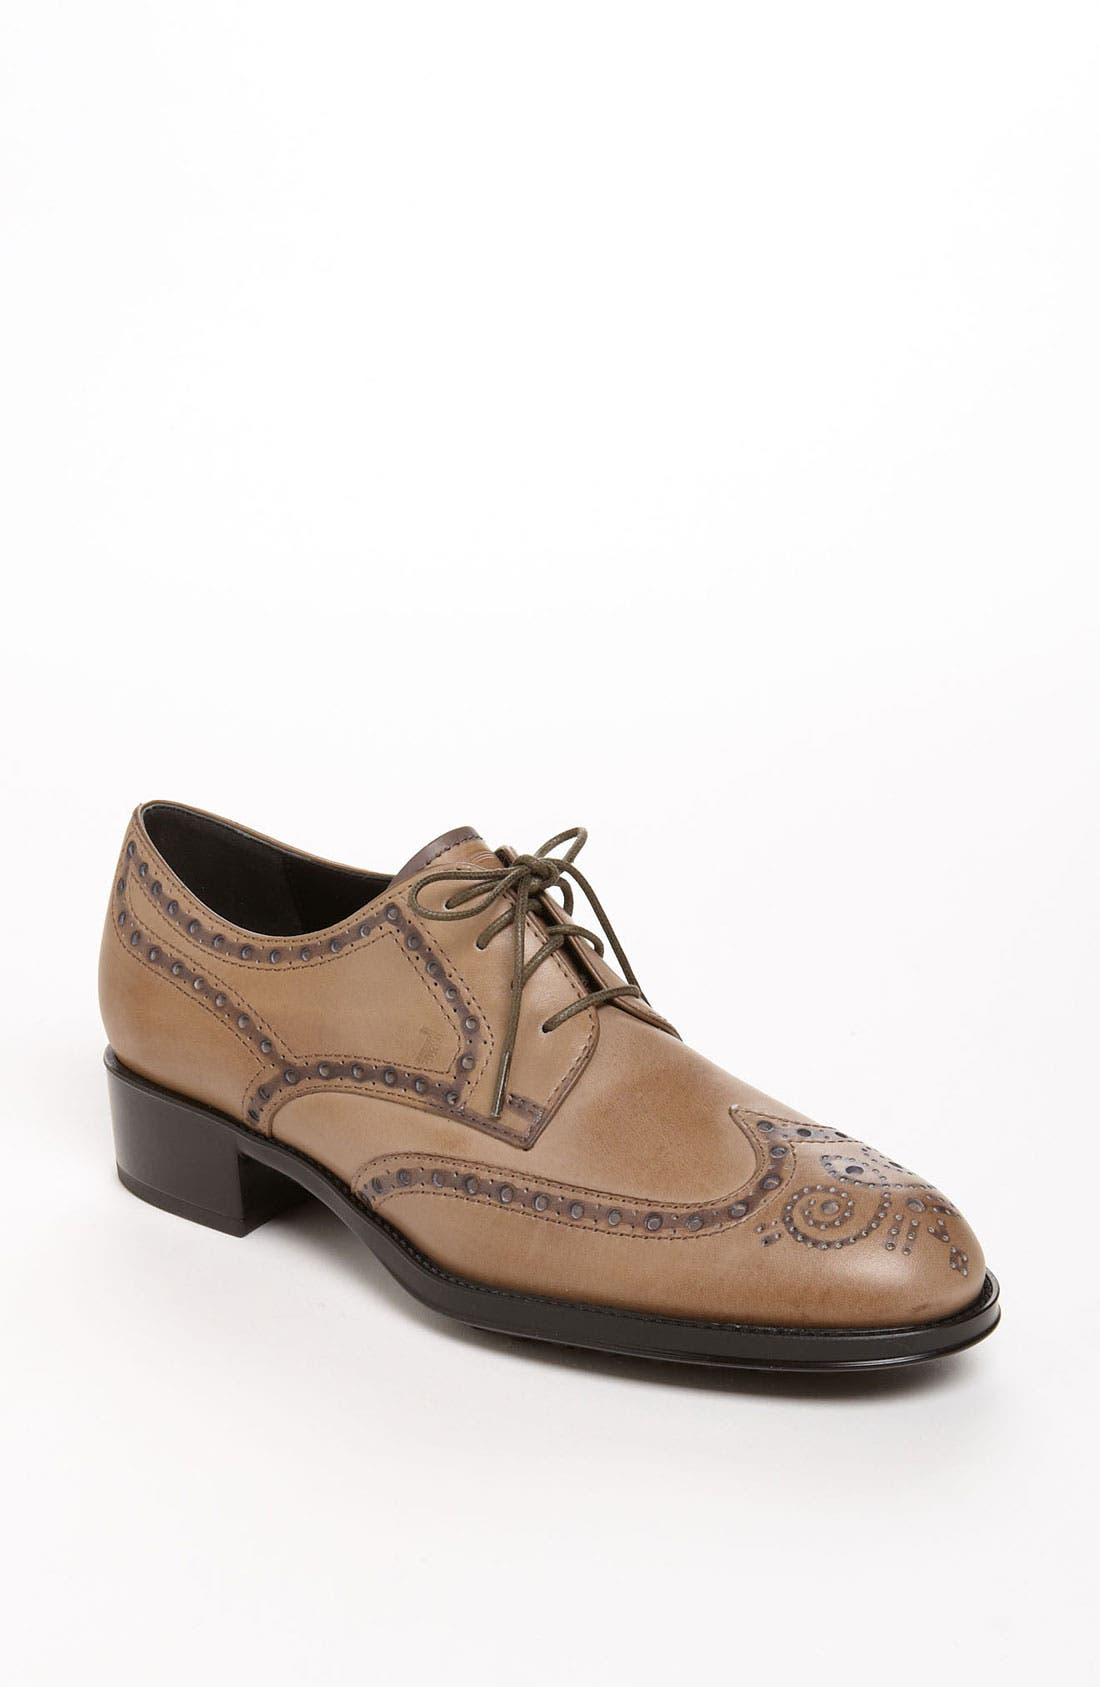 Main Image - Tod's 'Buccatore' Lace-Up Oxford